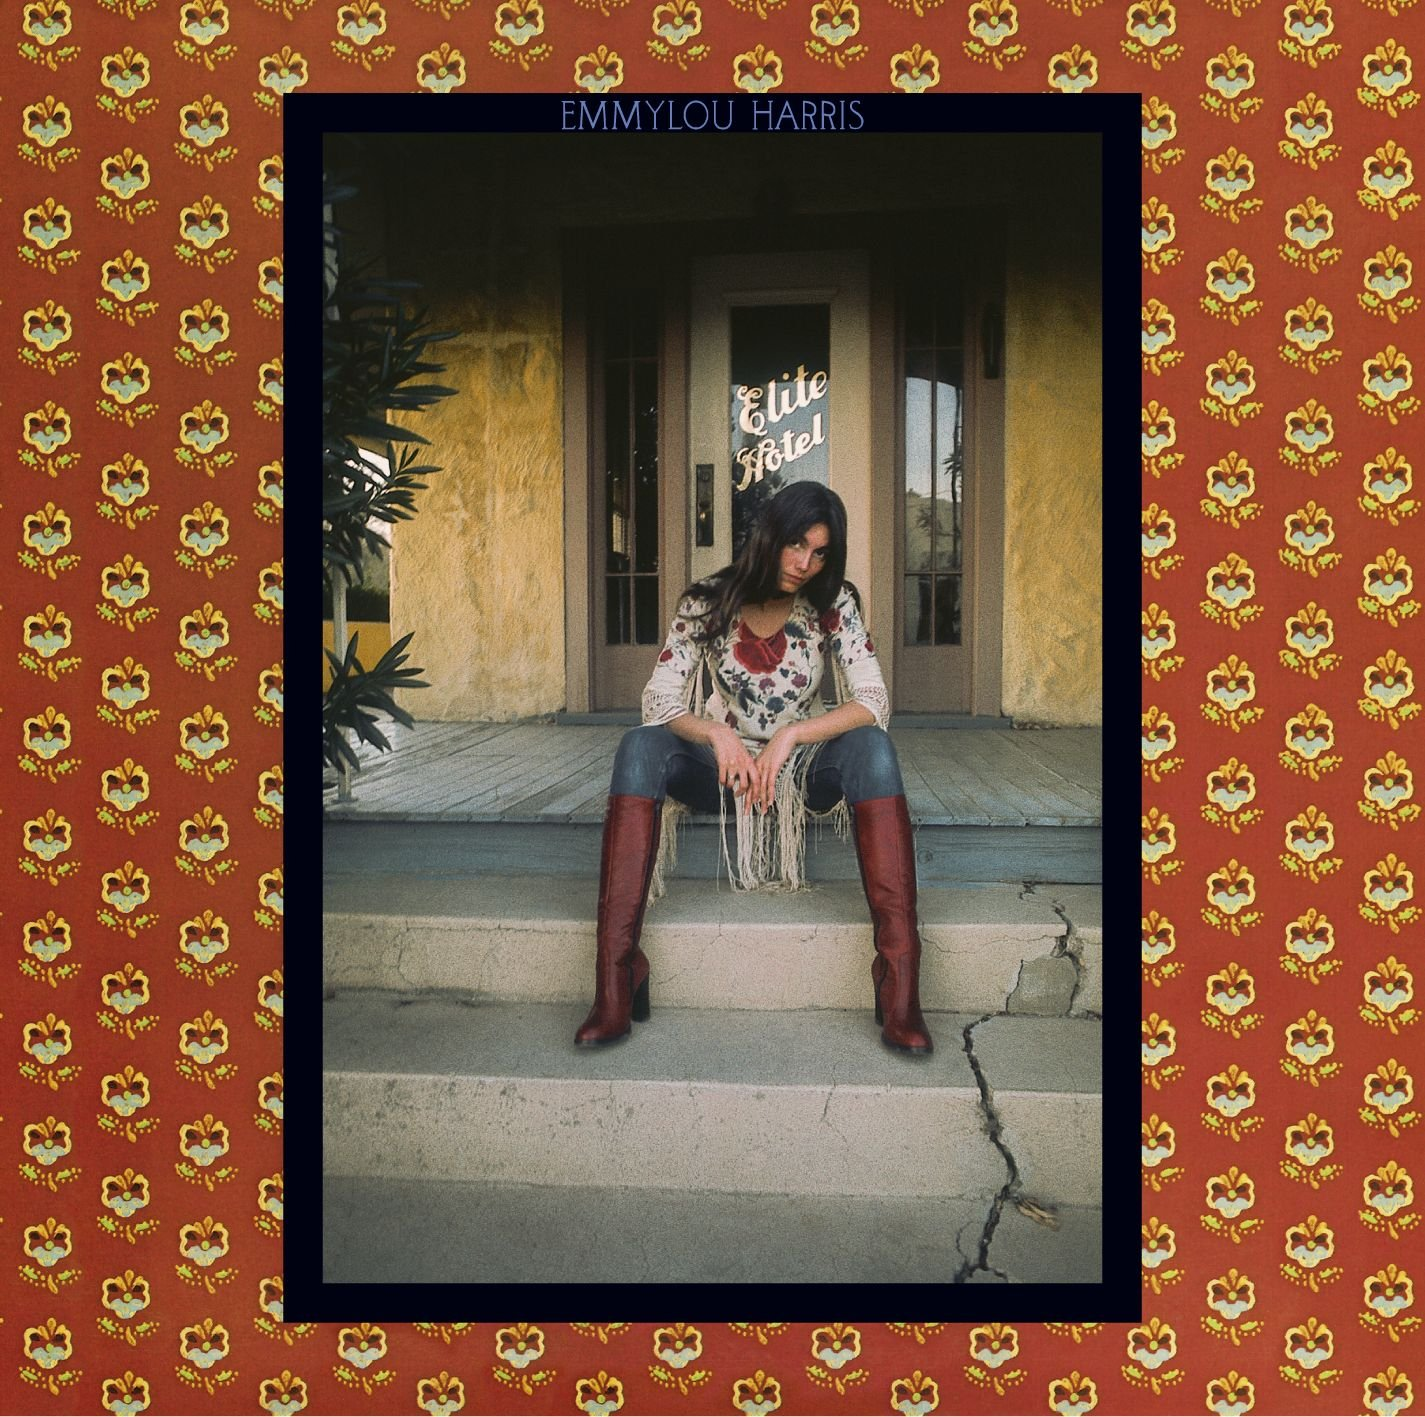 Emmylou harris elite hotel expanded remastered amazon com music